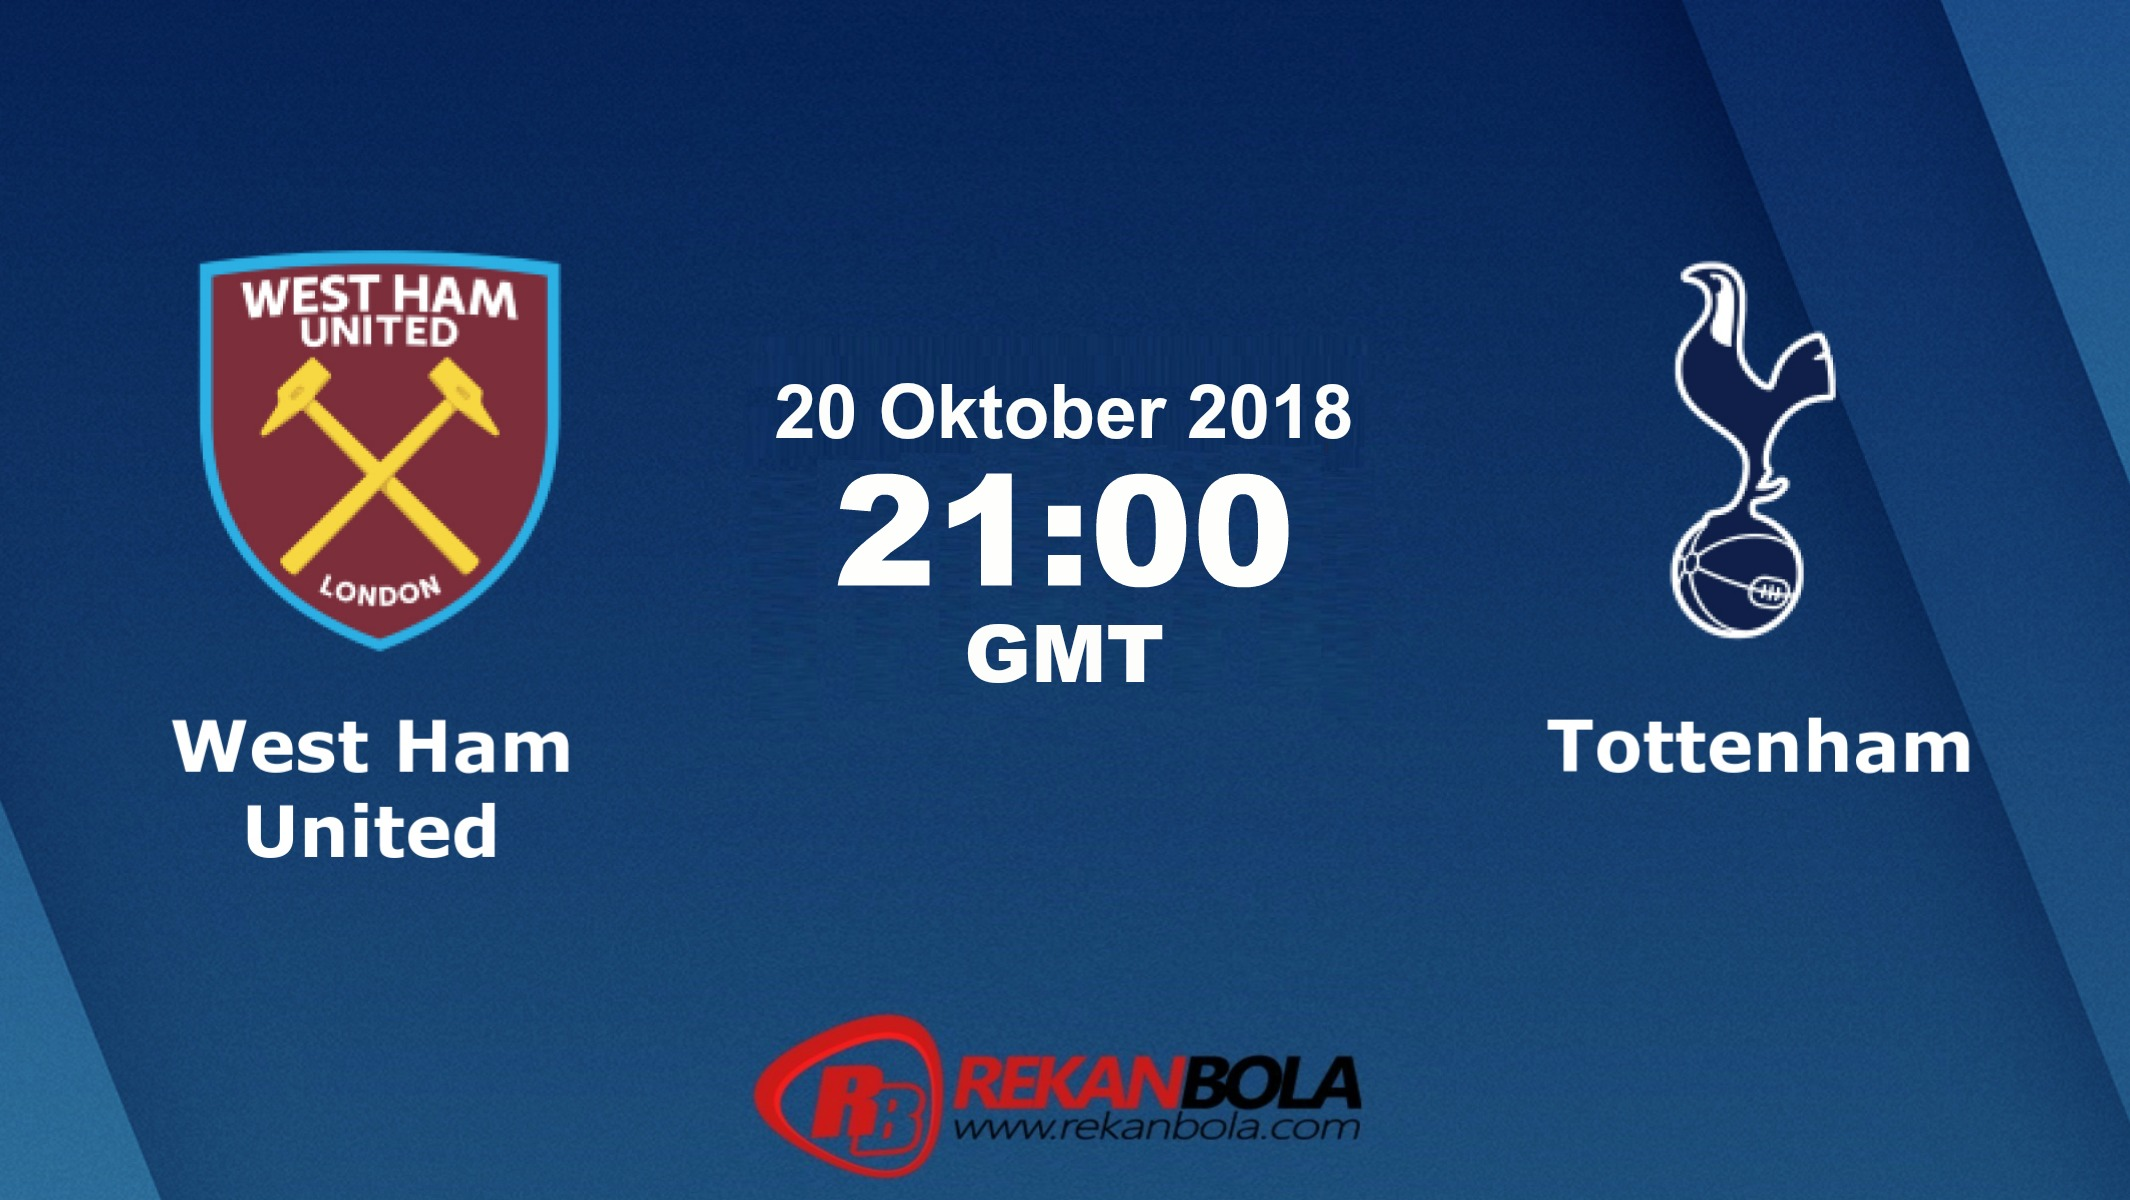 Nonton Siaran Live Streaming West Ham Vs Tottenham 20 Oktober 2018